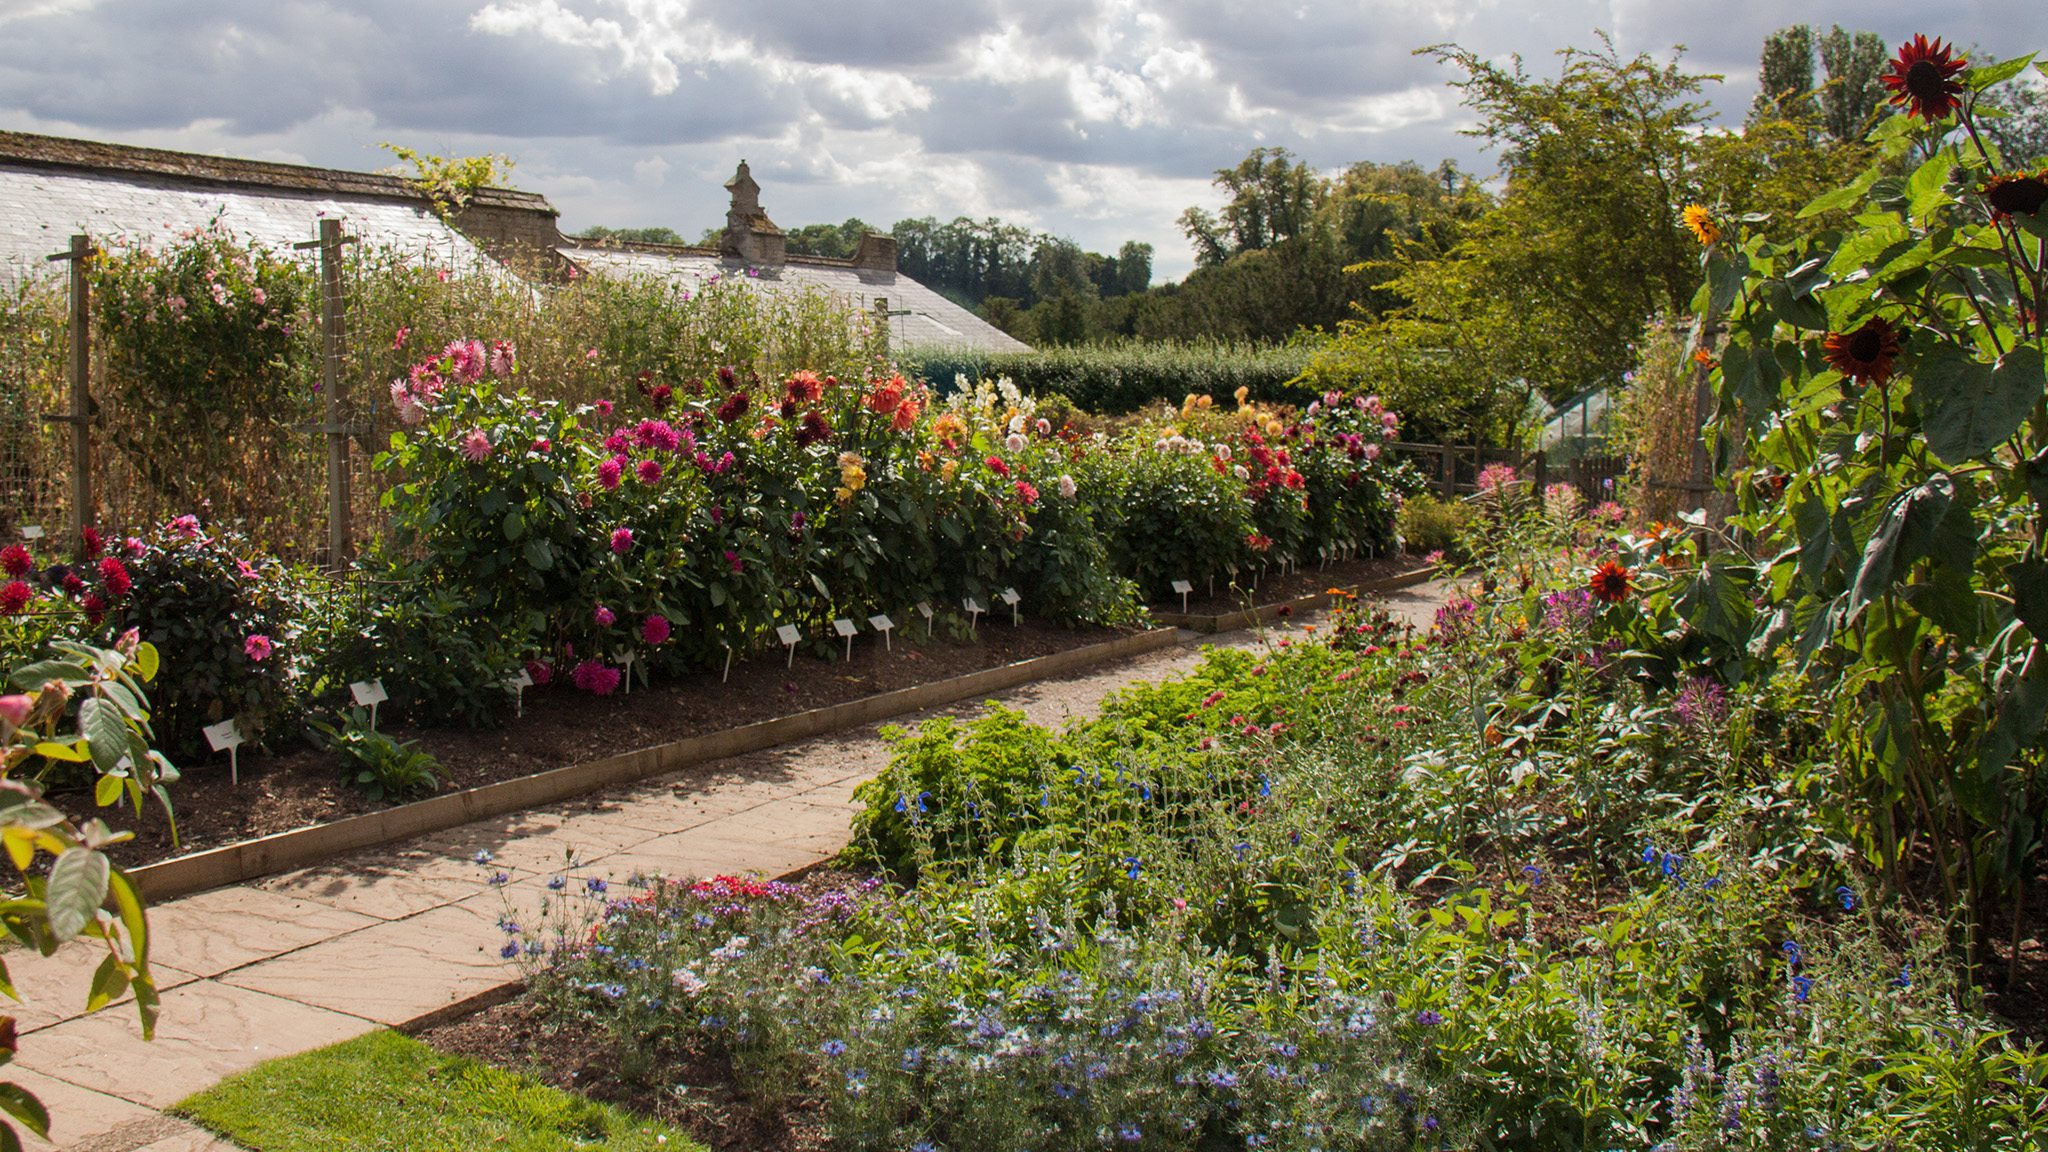 The appeal of the cutting garden | Financial Times